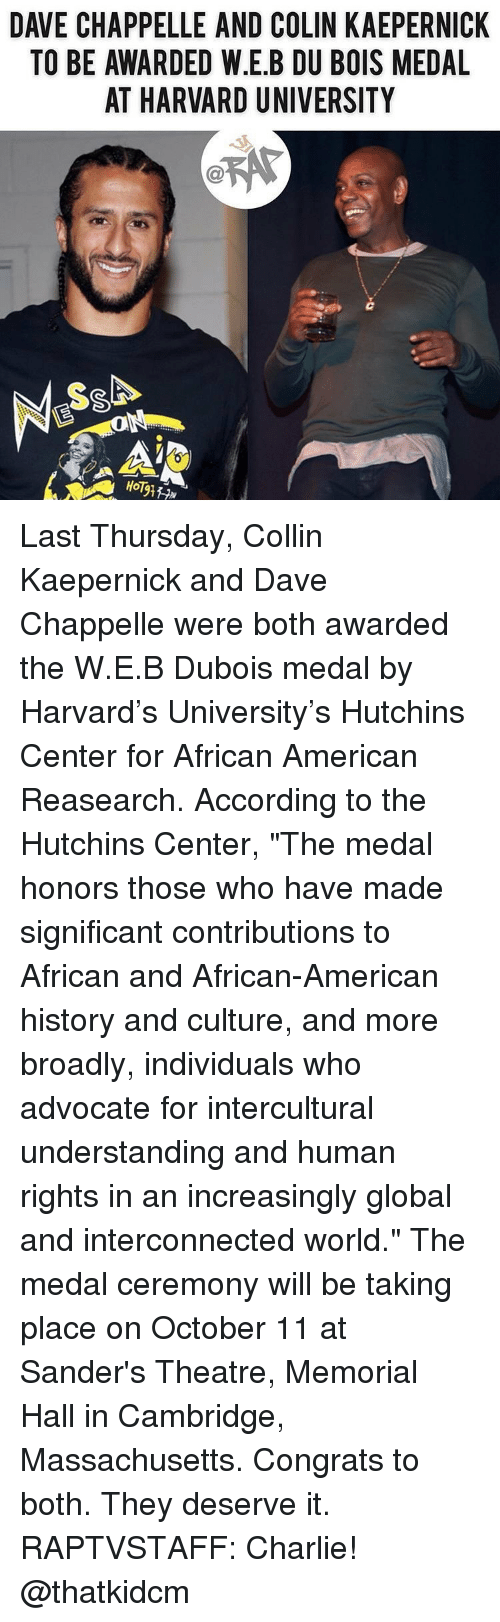 "Colin Kaepernick: DAVE CHAPPELLE AND COLIN KAEPERNICK  TO BE AWARDED W.E.B DU BOIS MEDAL  AT HARVARD UNIVERSITY  HoT Last Thursday, Collin Kaepernick and Dave Chappelle were both awarded the W.E.B Dubois medal by Harvard's University's Hutchins Center for African American Reasearch. According to the Hutchins Center, ""The medal honors those who have made significant contributions to African and African-American history and culture, and more broadly, individuals who advocate for intercultural understanding and human rights in an increasingly global and interconnected world."" The medal ceremony will be taking place on October 11 at Sander's Theatre, Memorial Hall in Cambridge, Massachusetts. Congrats to both. They deserve it. RAPTVSTAFF: Charlie! @thatkidcm"